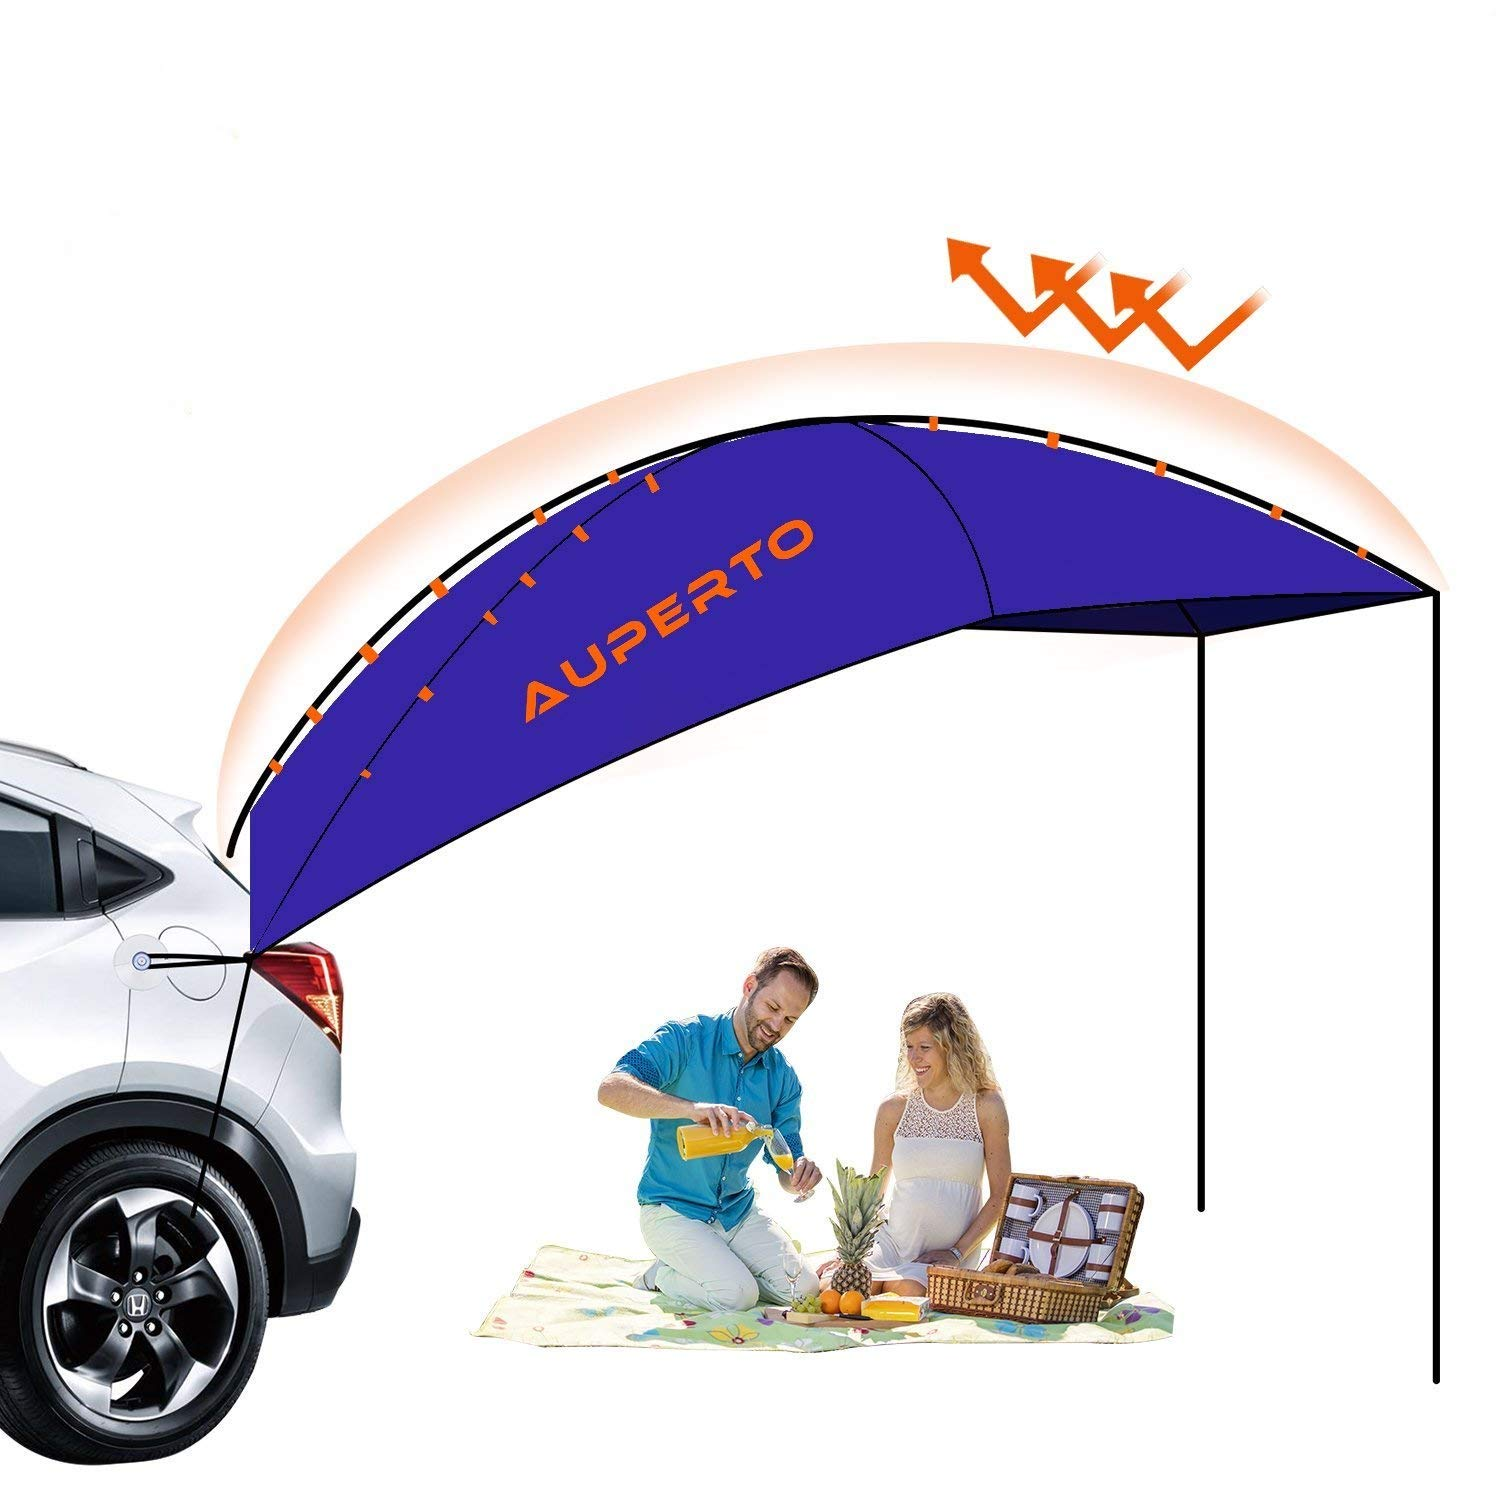 AUPERTO Camping Tent,3-4 Person Sun Shelter,Auto Canopy Camper,Portable Foldable Outdoor Tent,Waterproof, Anti-uv,Best for SUV, MPV, Hatchback, Minivan, Sedan